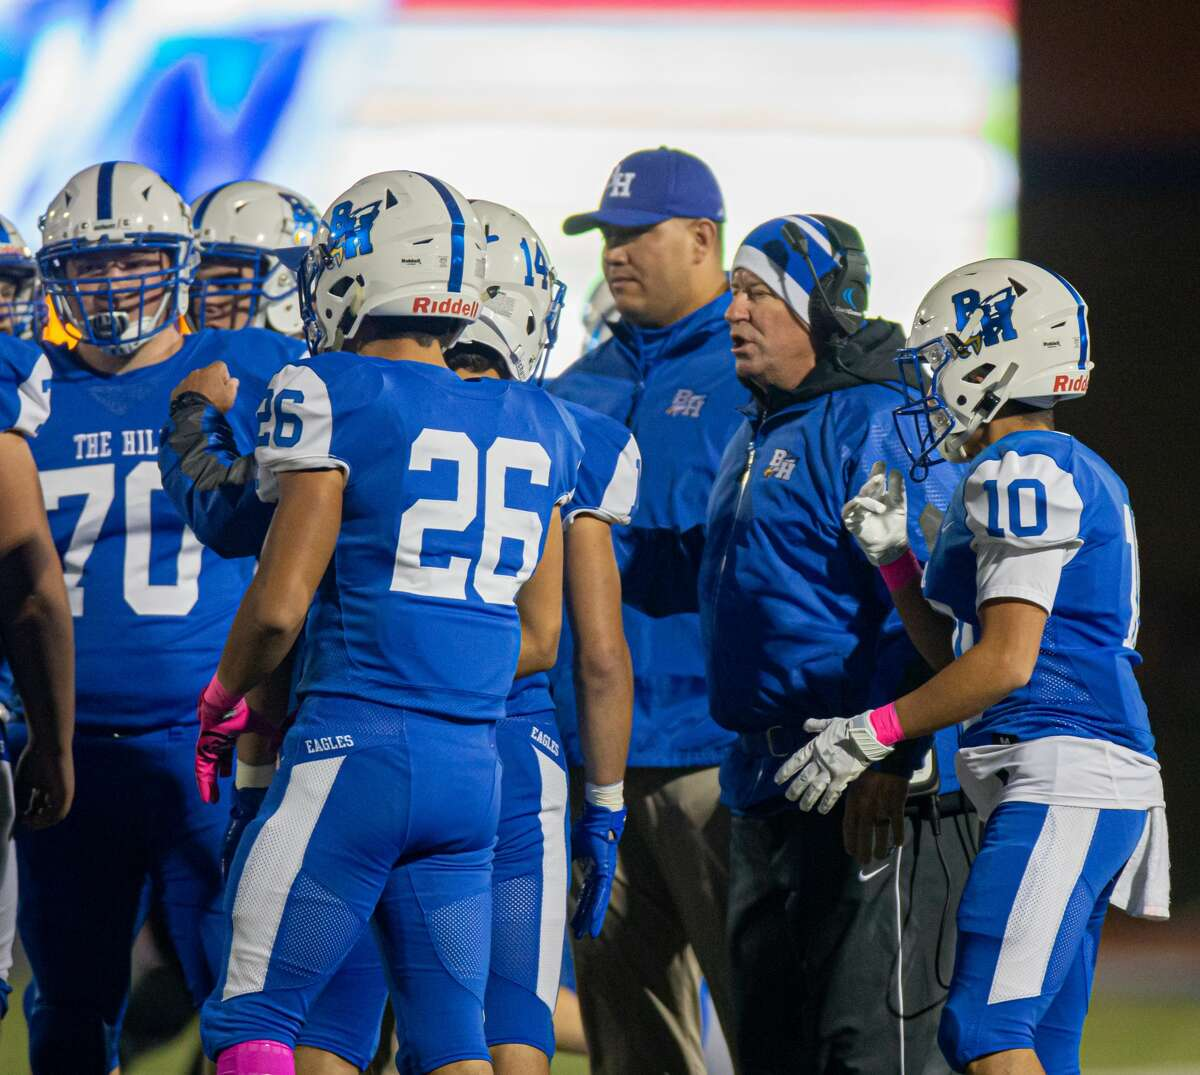 PHOTOS: The highest-paid high school football coaches in the area Barbers Hill High School football coach Tom Westerberg has his team in the high school playoffs, beginning this week. He's also one of the most well-paid coaches in the area. Browse through the photos above for a look at the highest-paid high school football coaches in the area ...